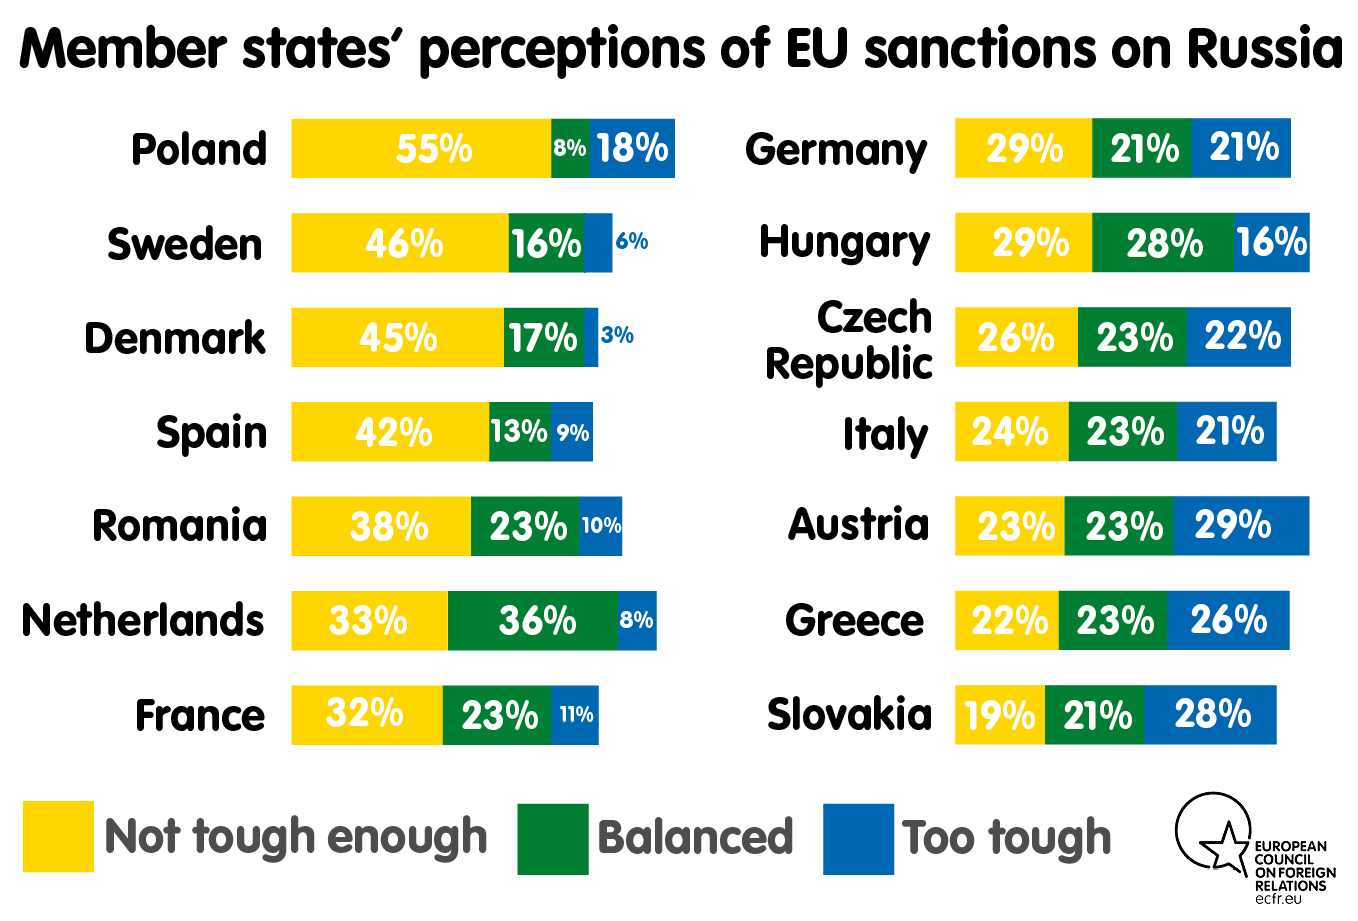 Member state's perceptions of EU sanctions on Russia